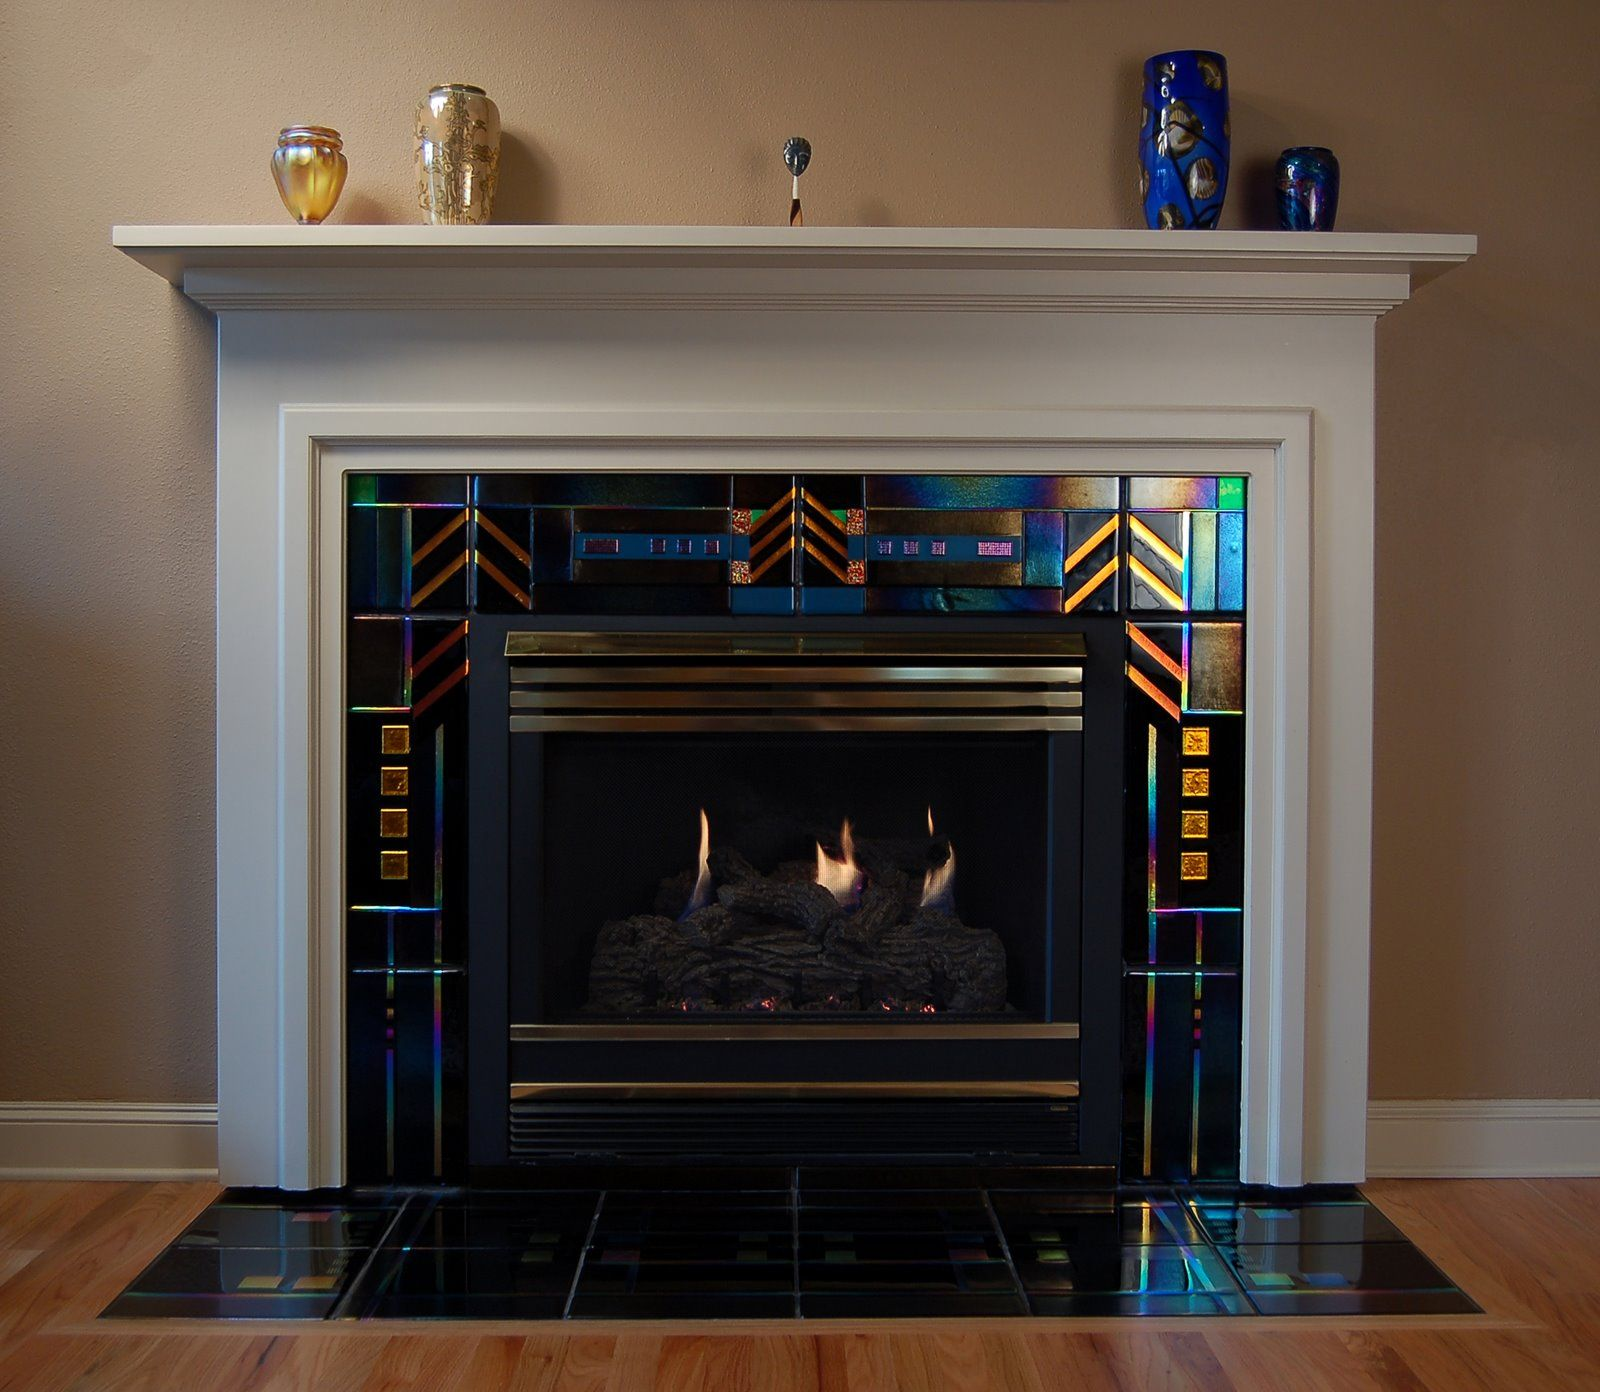 Ideas For Tile Around Fireplace: Art Glass Tiles For Fireplace...not For